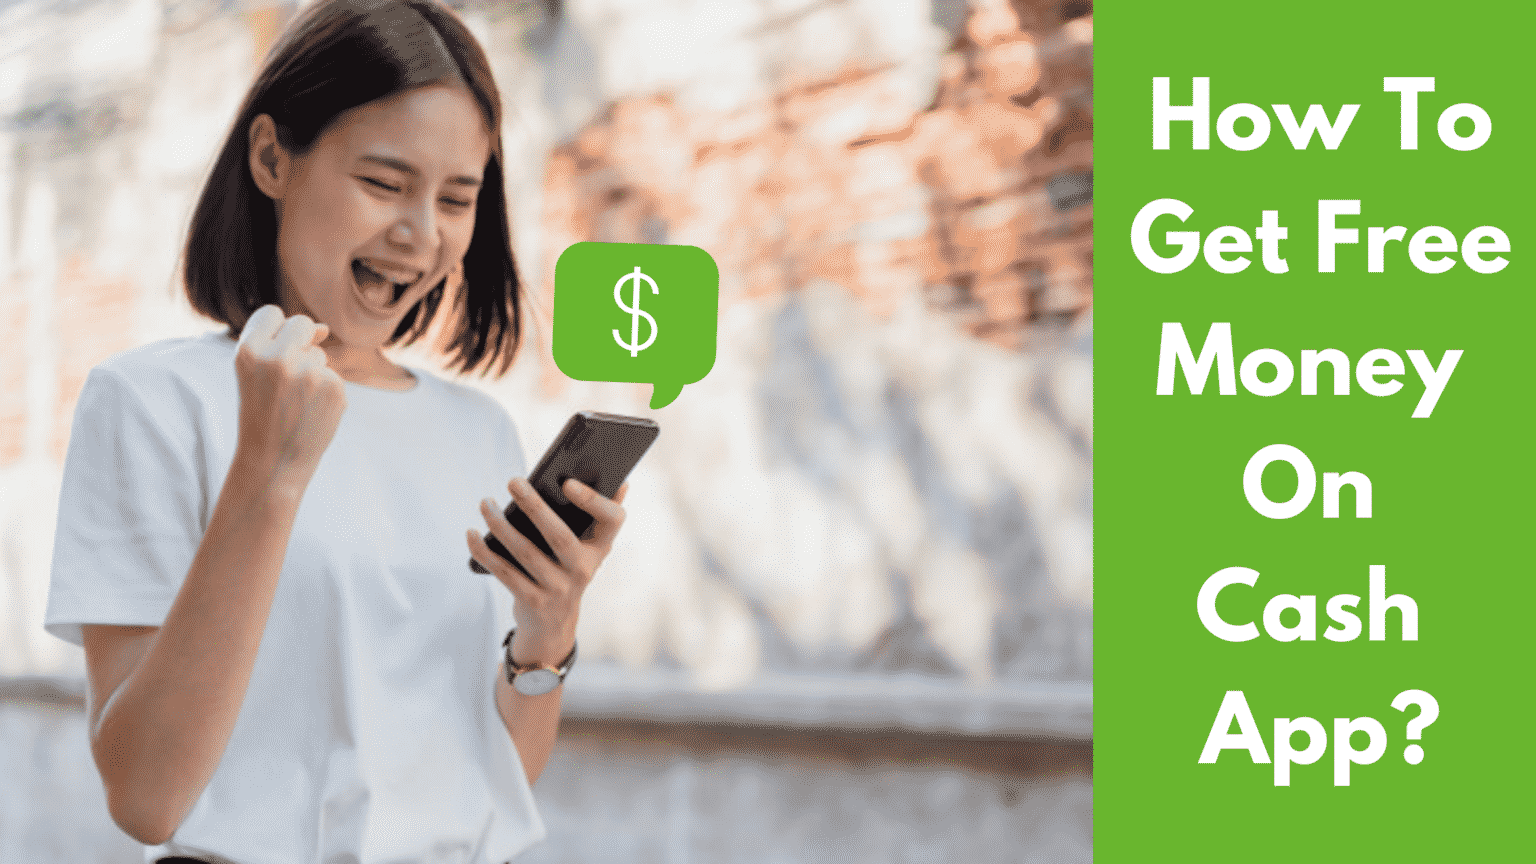 Free Money Cash App - Check Out The Tips Here To Earn Free Money